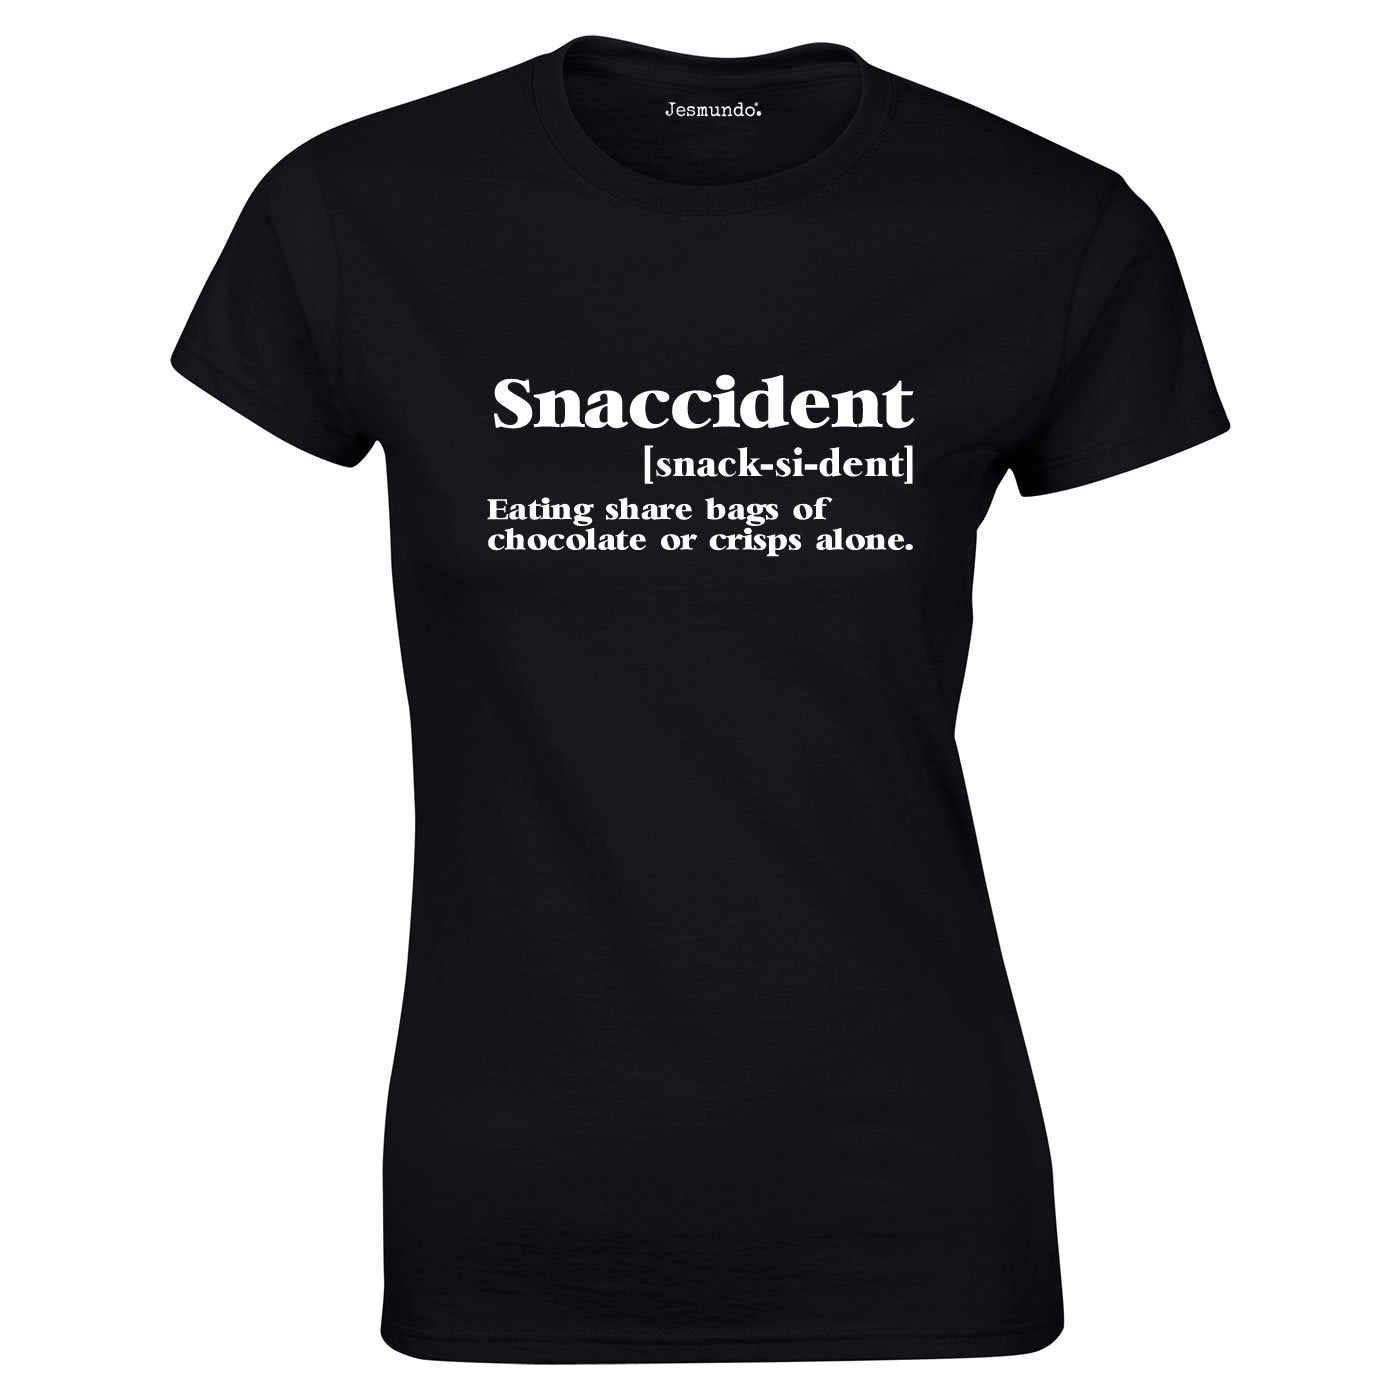 Snaccident T Shirt